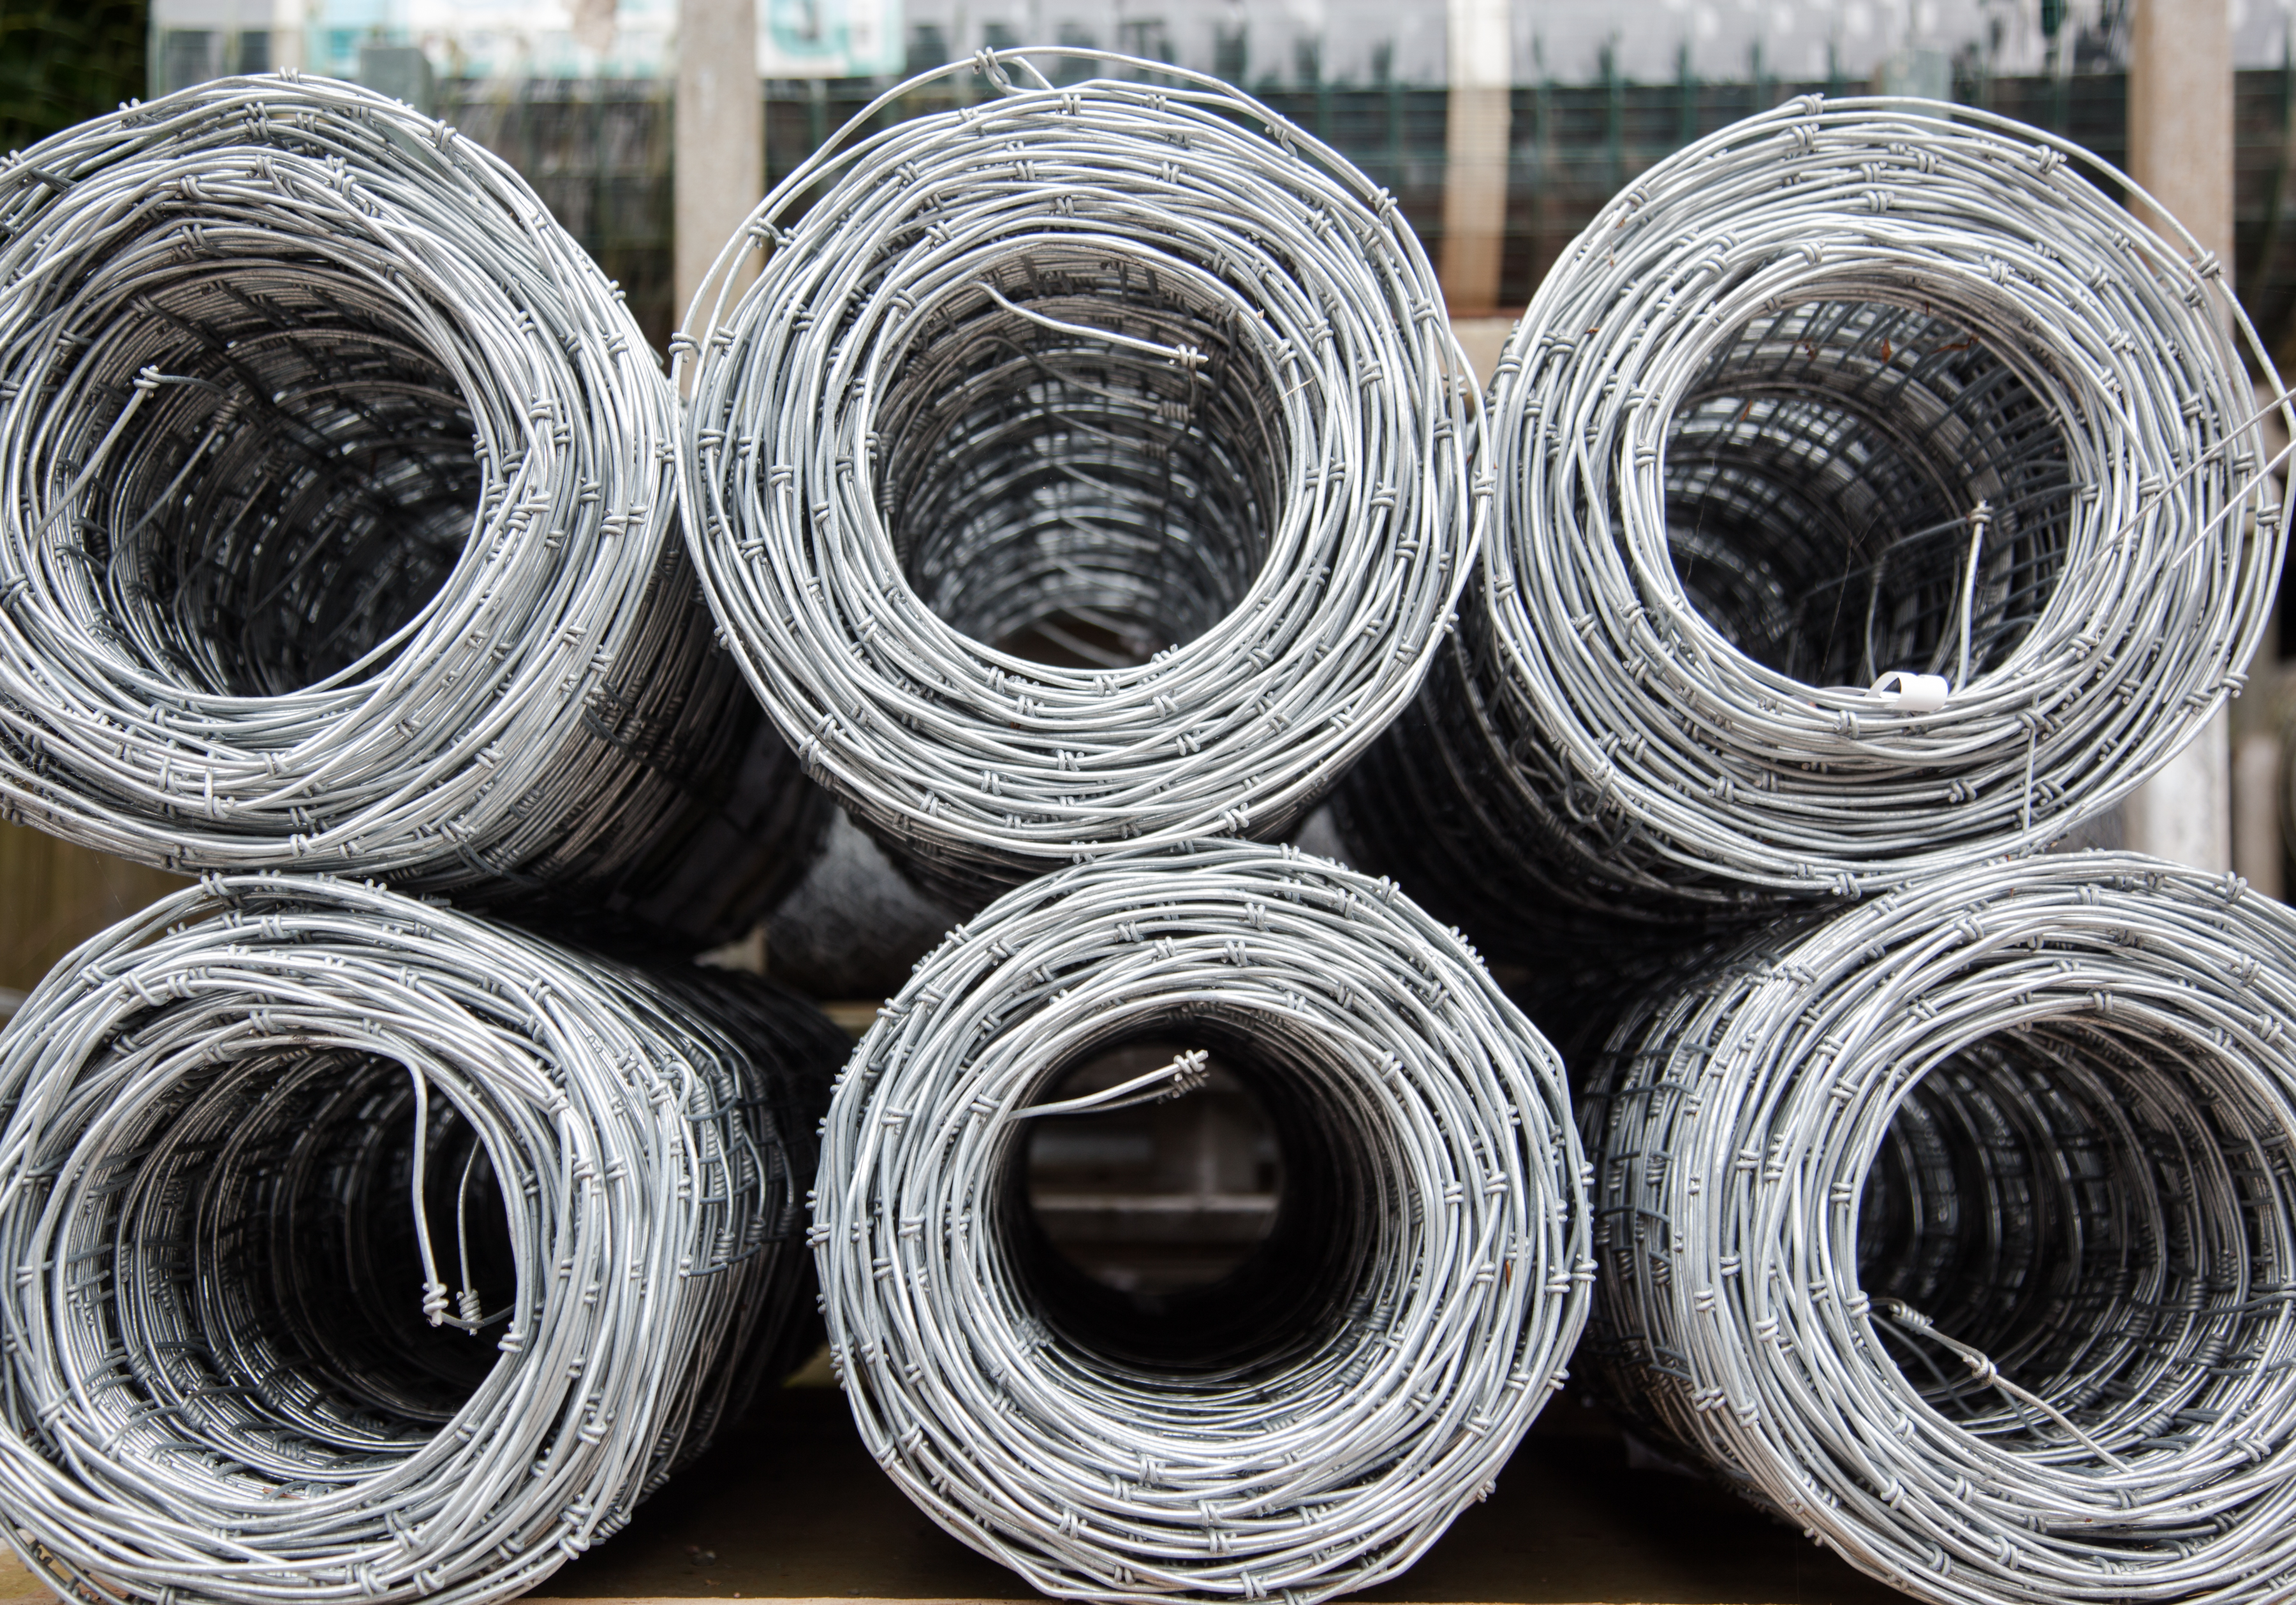 Six rolls of stock wire. The stock wire is on display at a fencing suppliers in Birmingham.